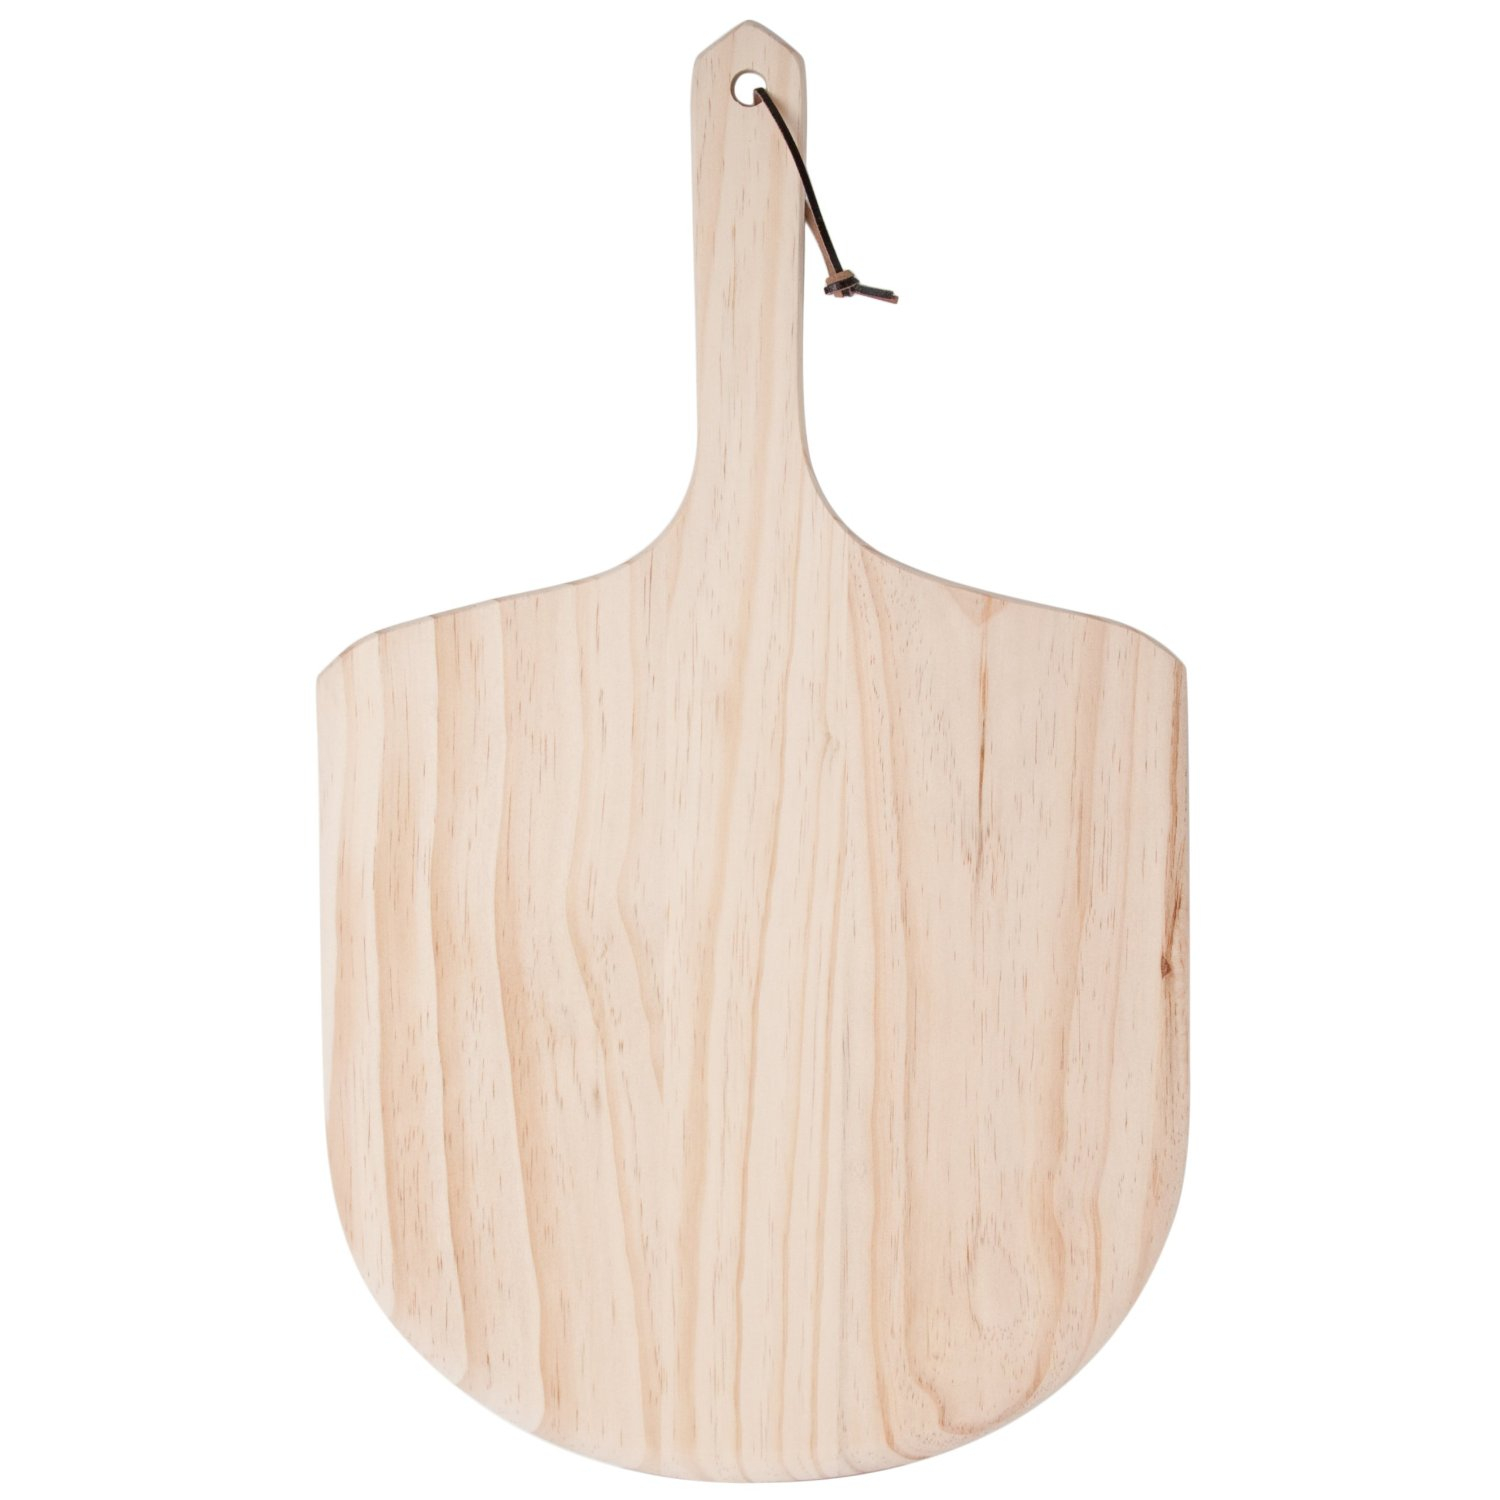 Harold Import Company Solid Wood Pizza Peel, 14 Inch